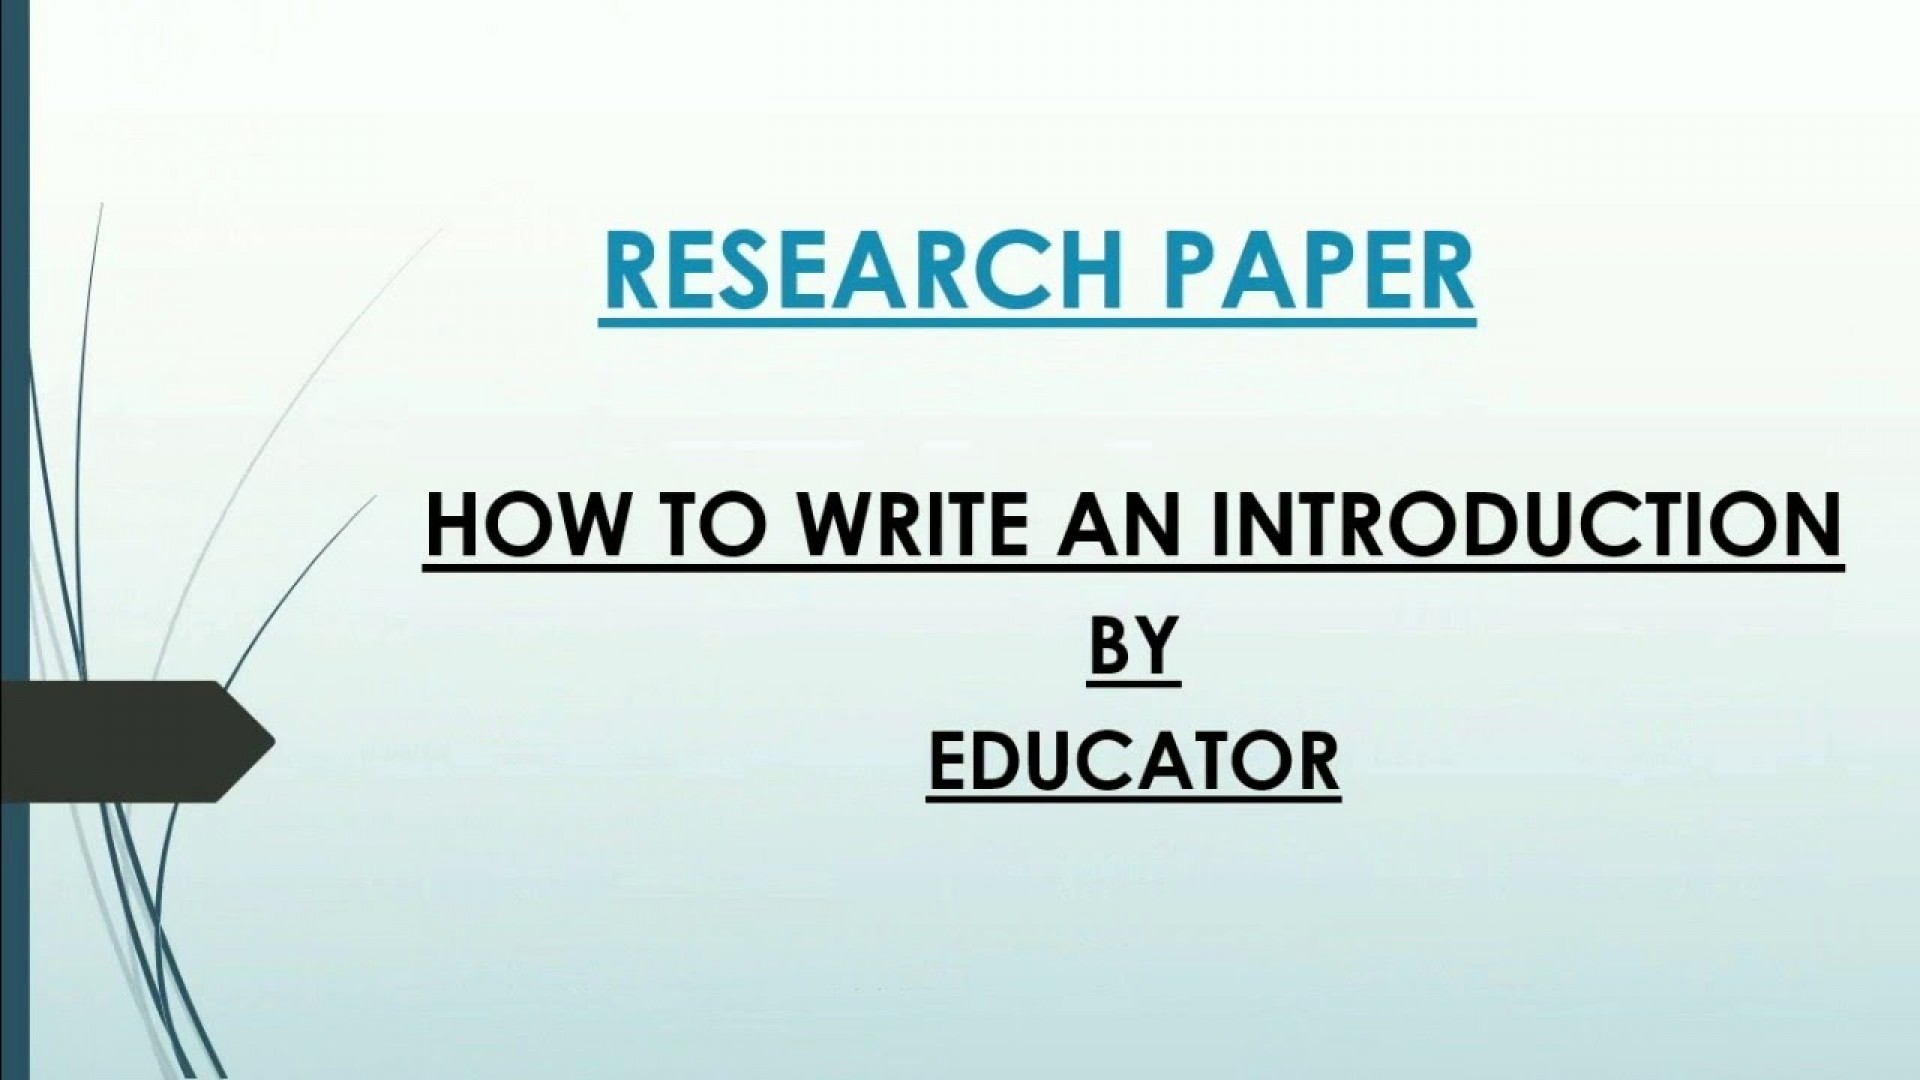 005 Research Paper Maxresdefault Best Way To Start Incredible A Introduction How Write Ppt Good Your Paragraph On 1920